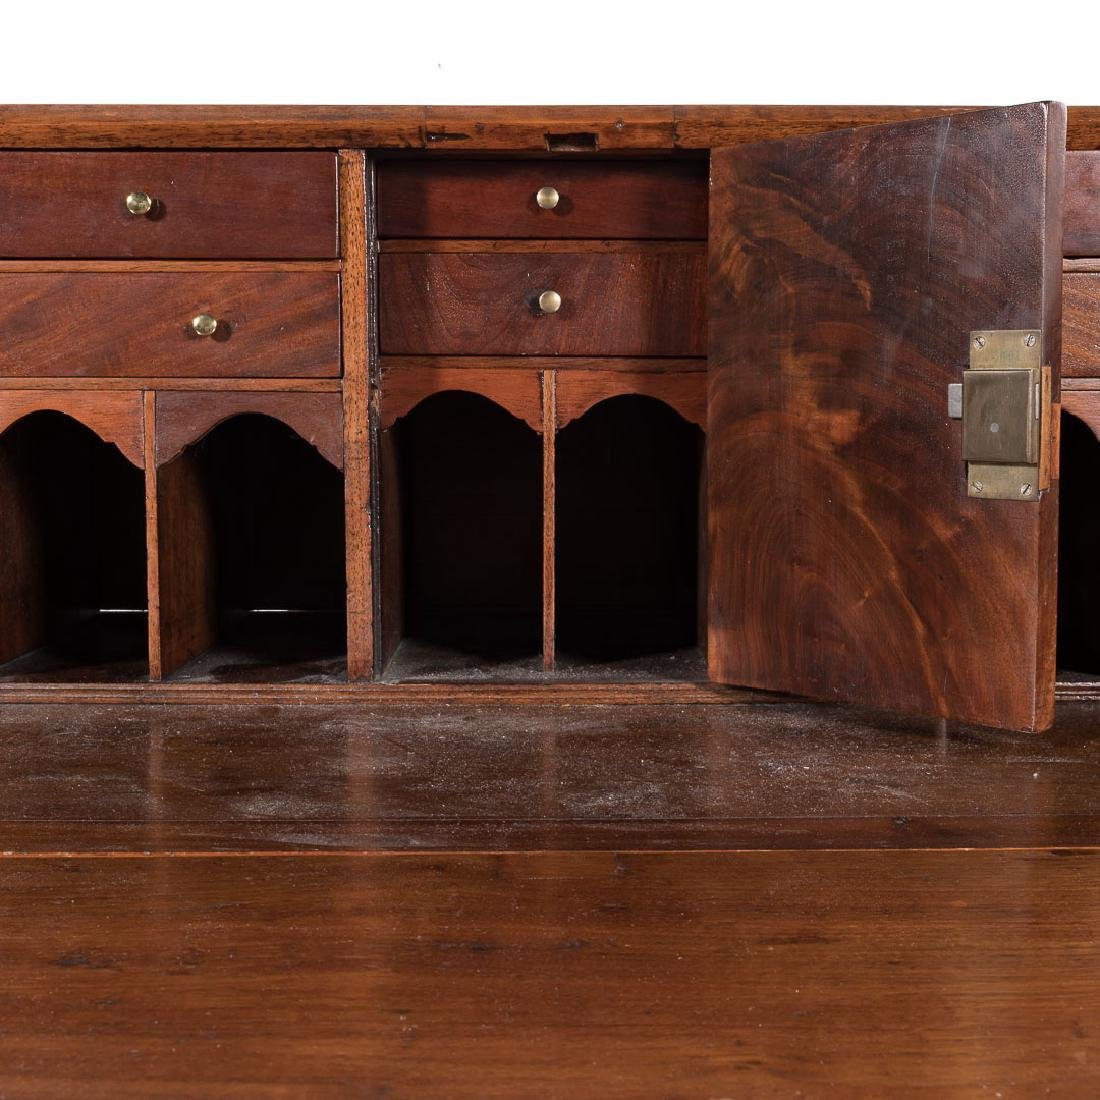 American Federal walnut slant-front desk - 5